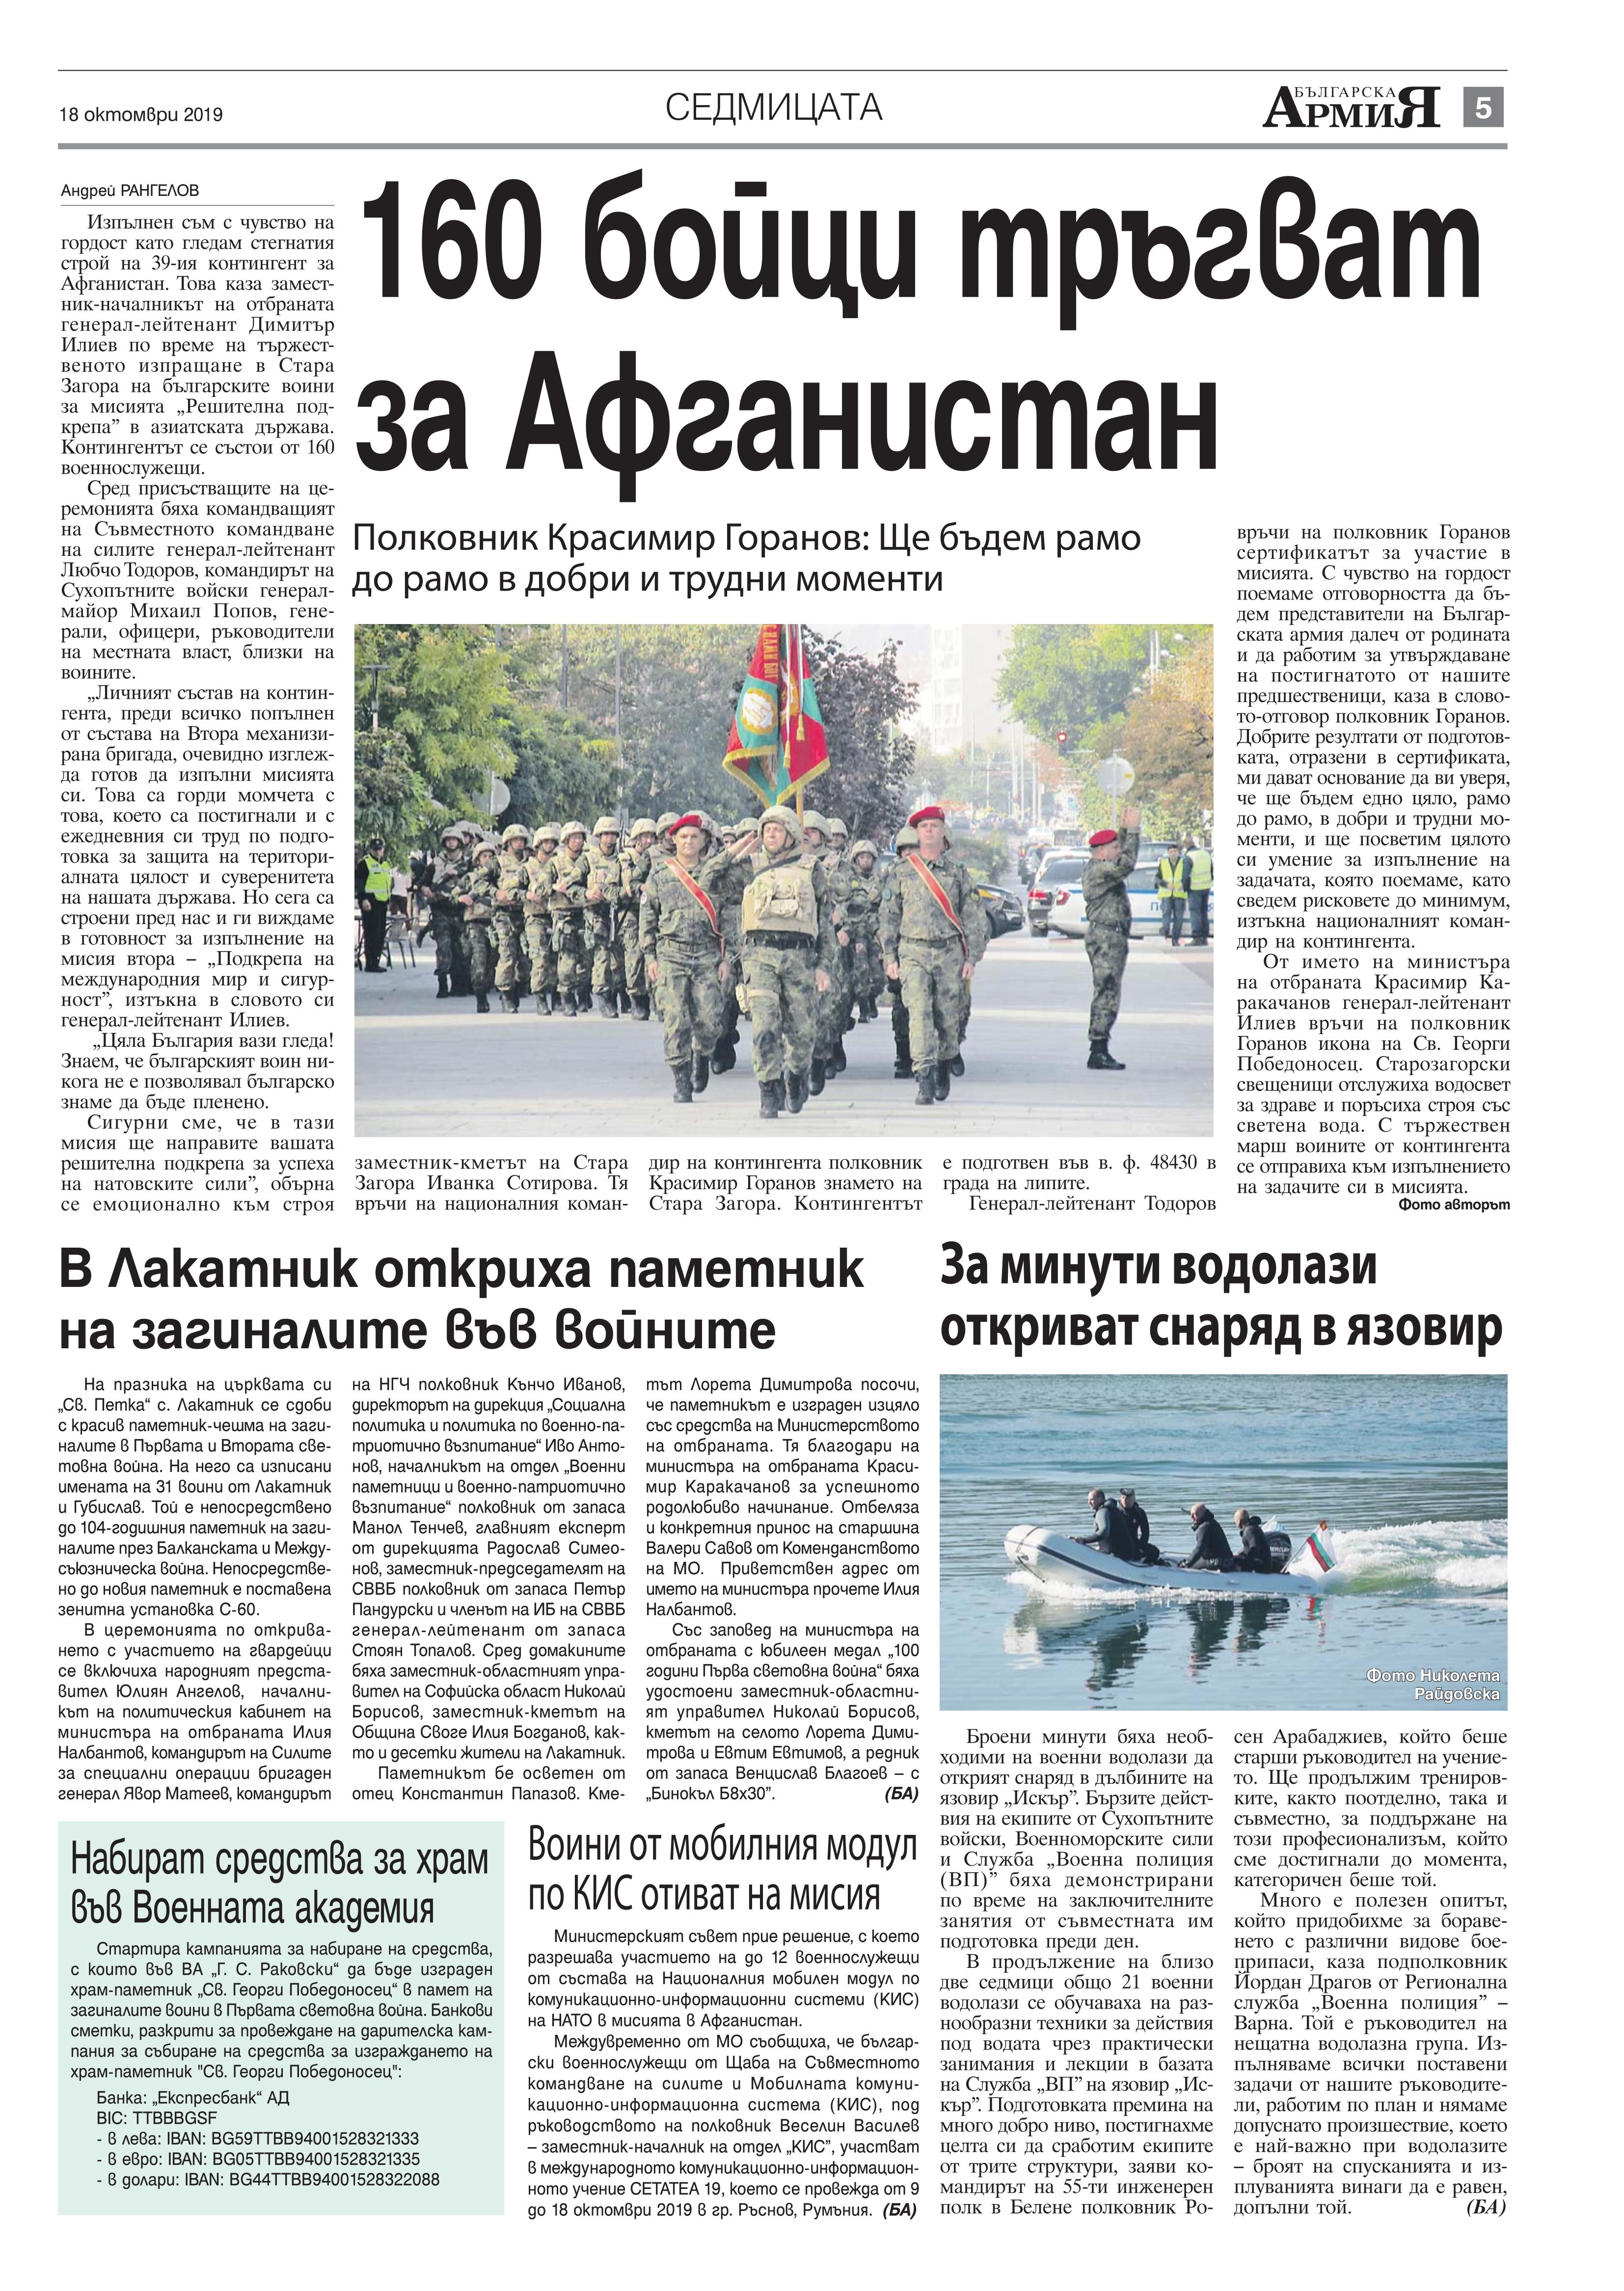 https://armymedia.bg/wp-content/uploads/2015/06/05.page1_-108.jpg